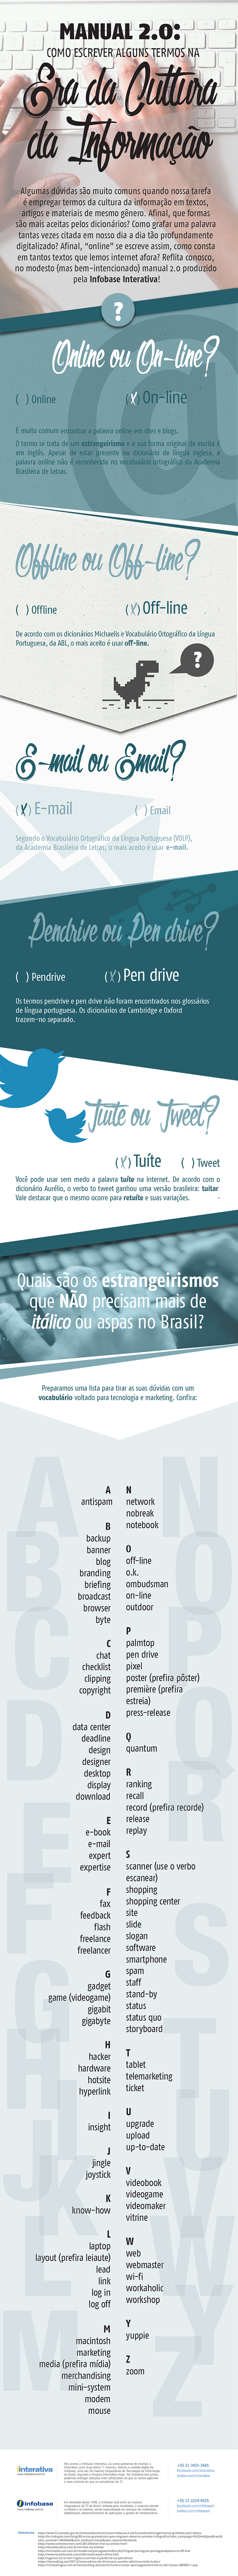 follow-the-colours-infografico-como-escrever-expressoes-cultura-digital-iinterativa